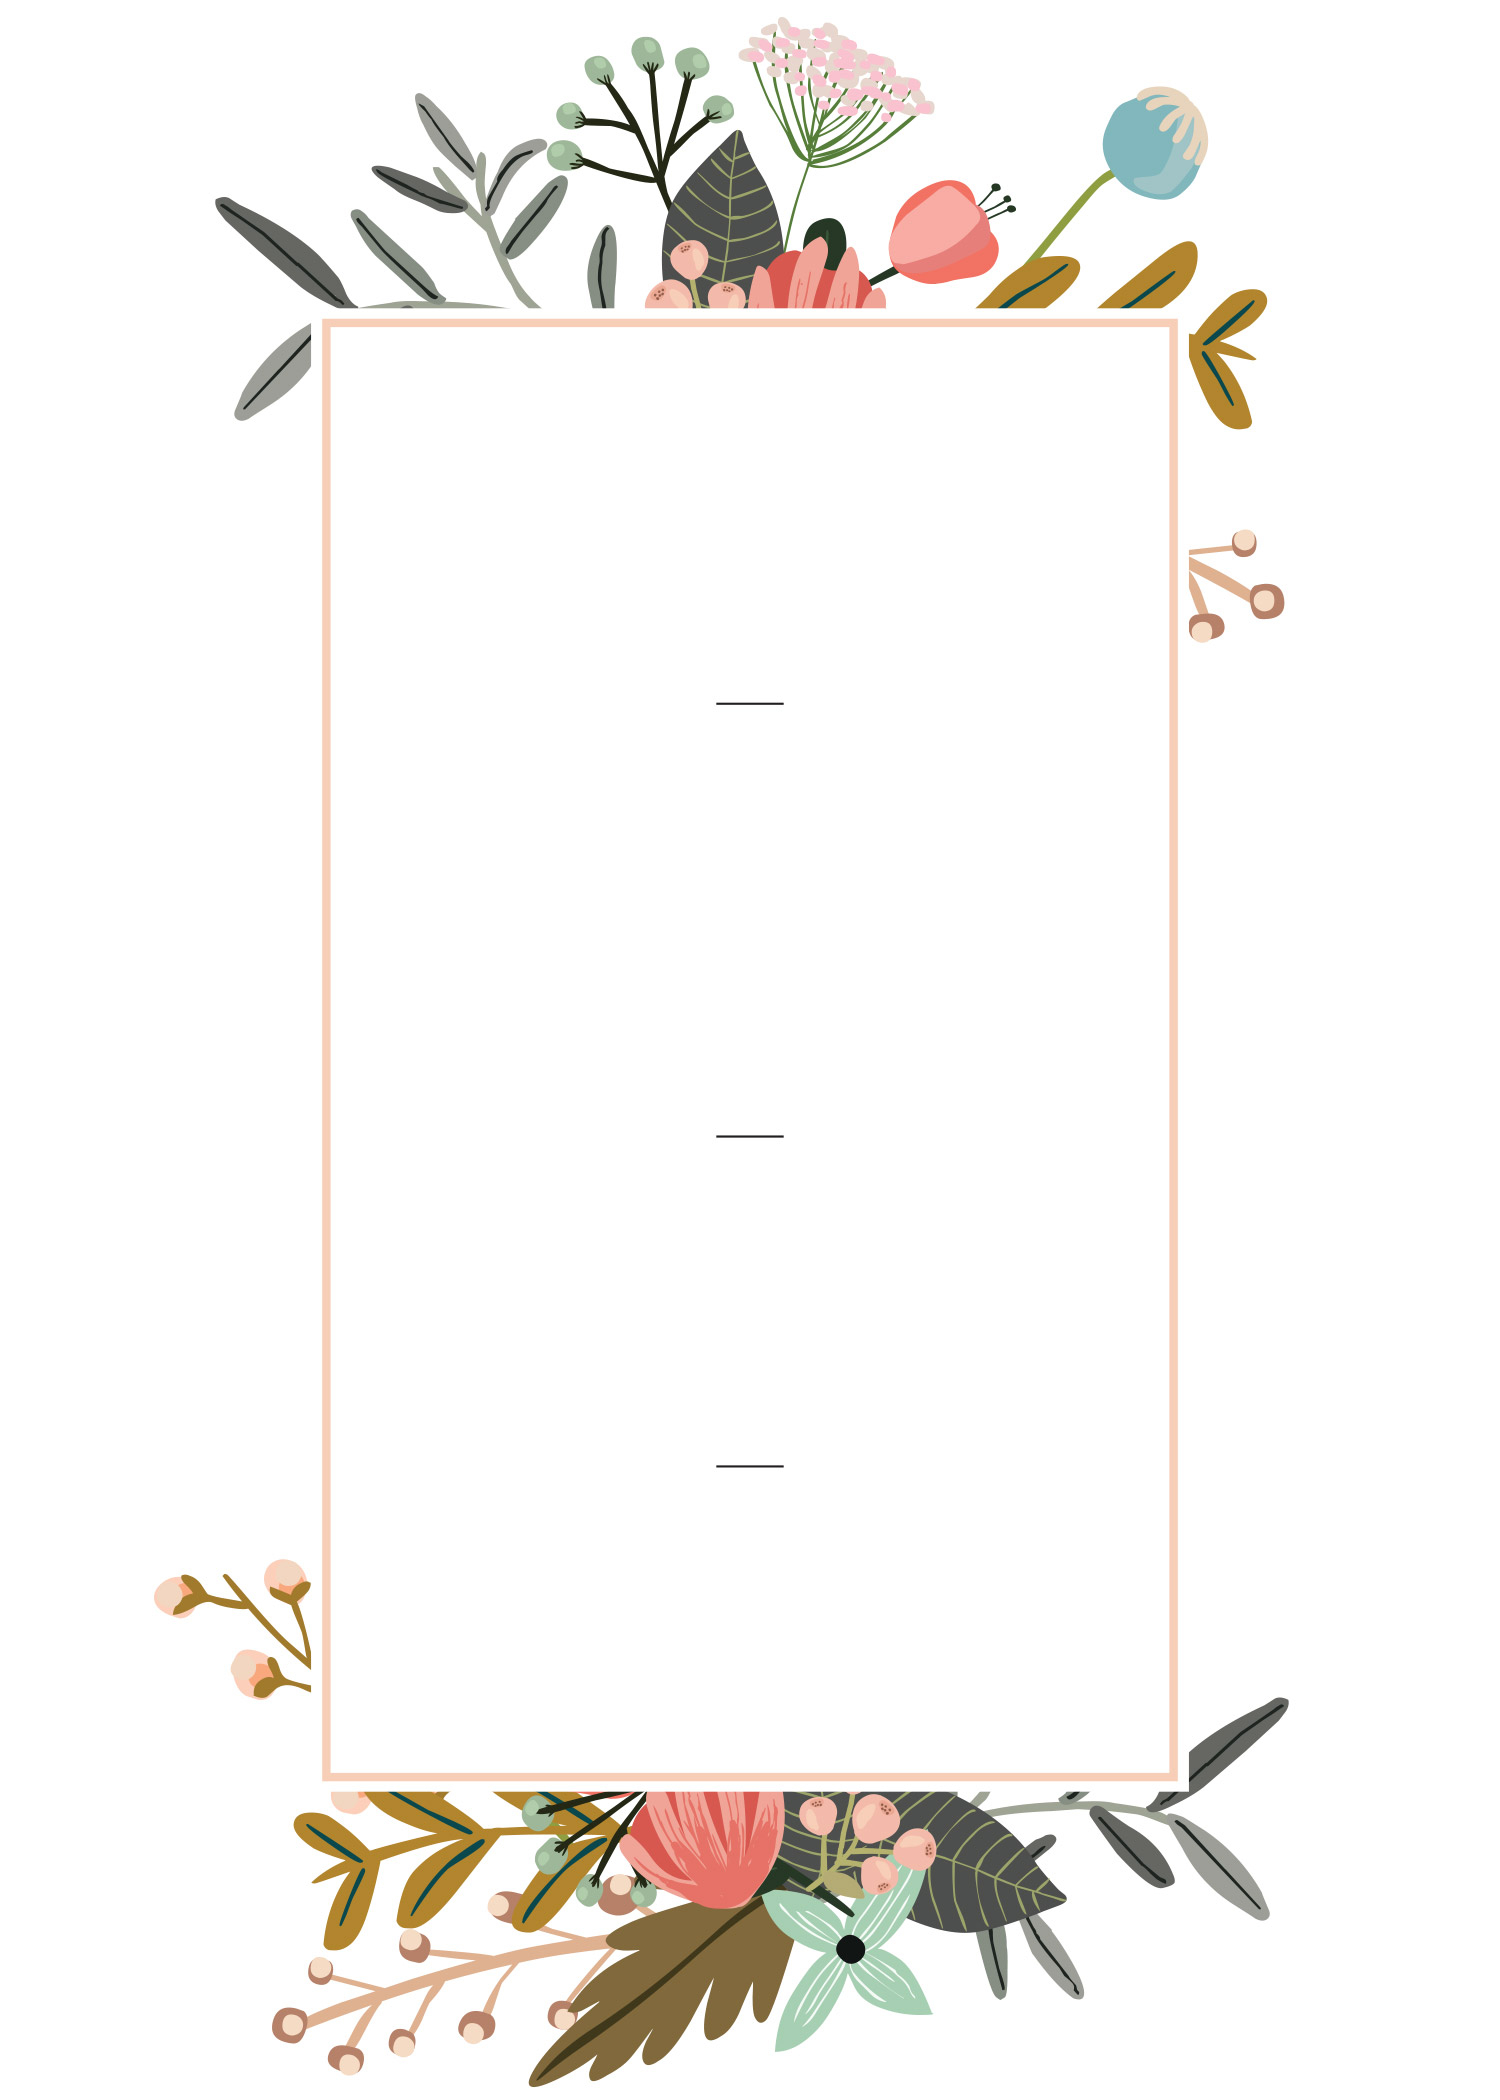 Editable Wedding Invitation Templates For The Perfect Card Shutterfly for size 1500 X 2100